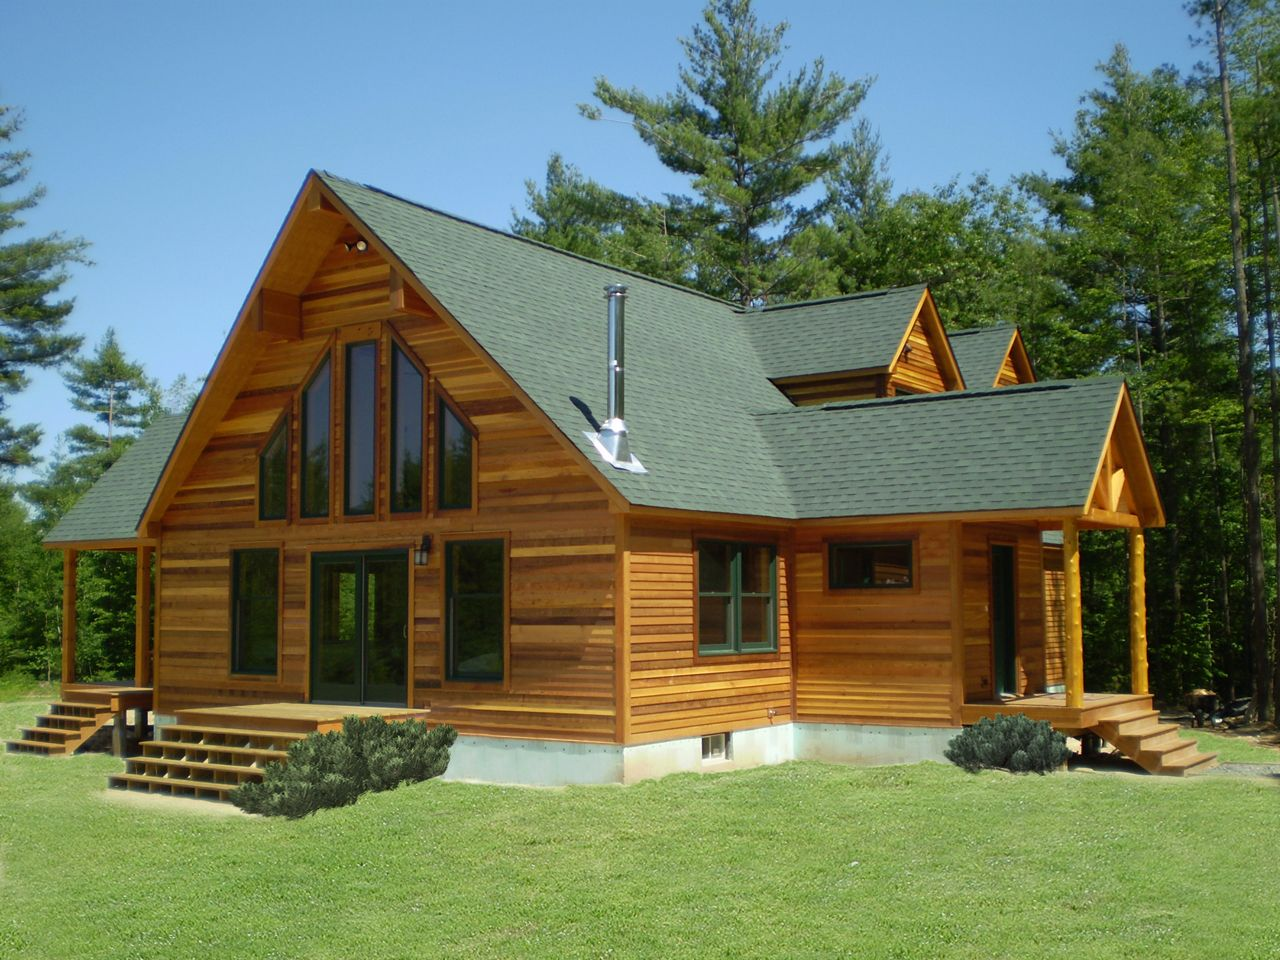 modular homes is to deliver affordable energy efficient custom modular homes - Prefab Homes Affordable